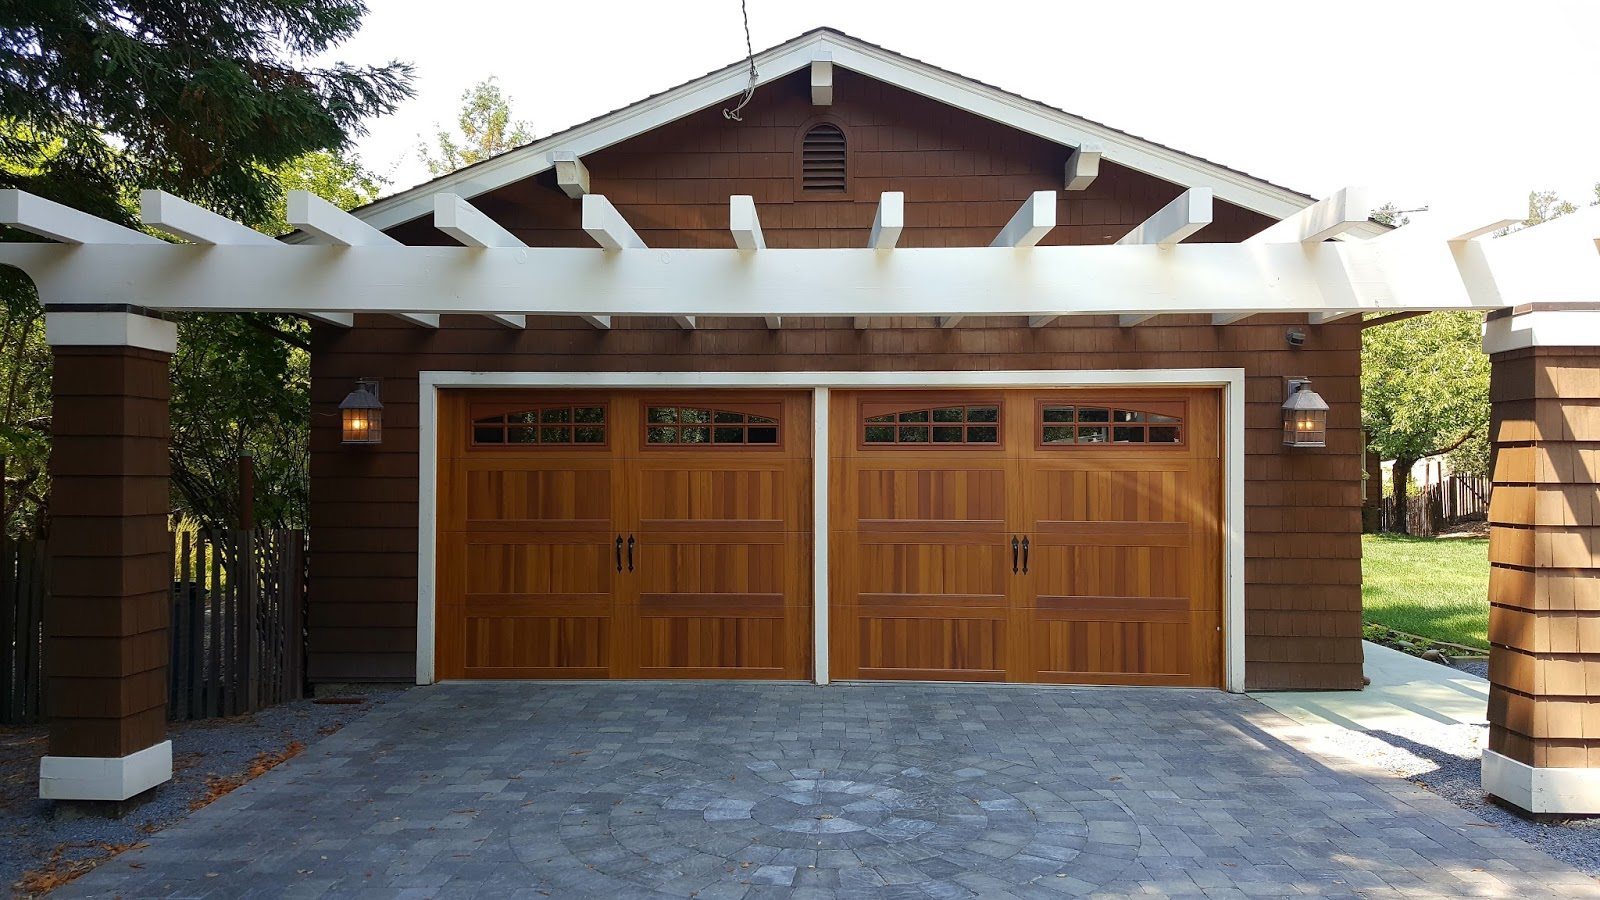 Good Call Hanson Overhead Today For A Budget Friendly Solution To Your New  Custom Garage Door Aspirations!